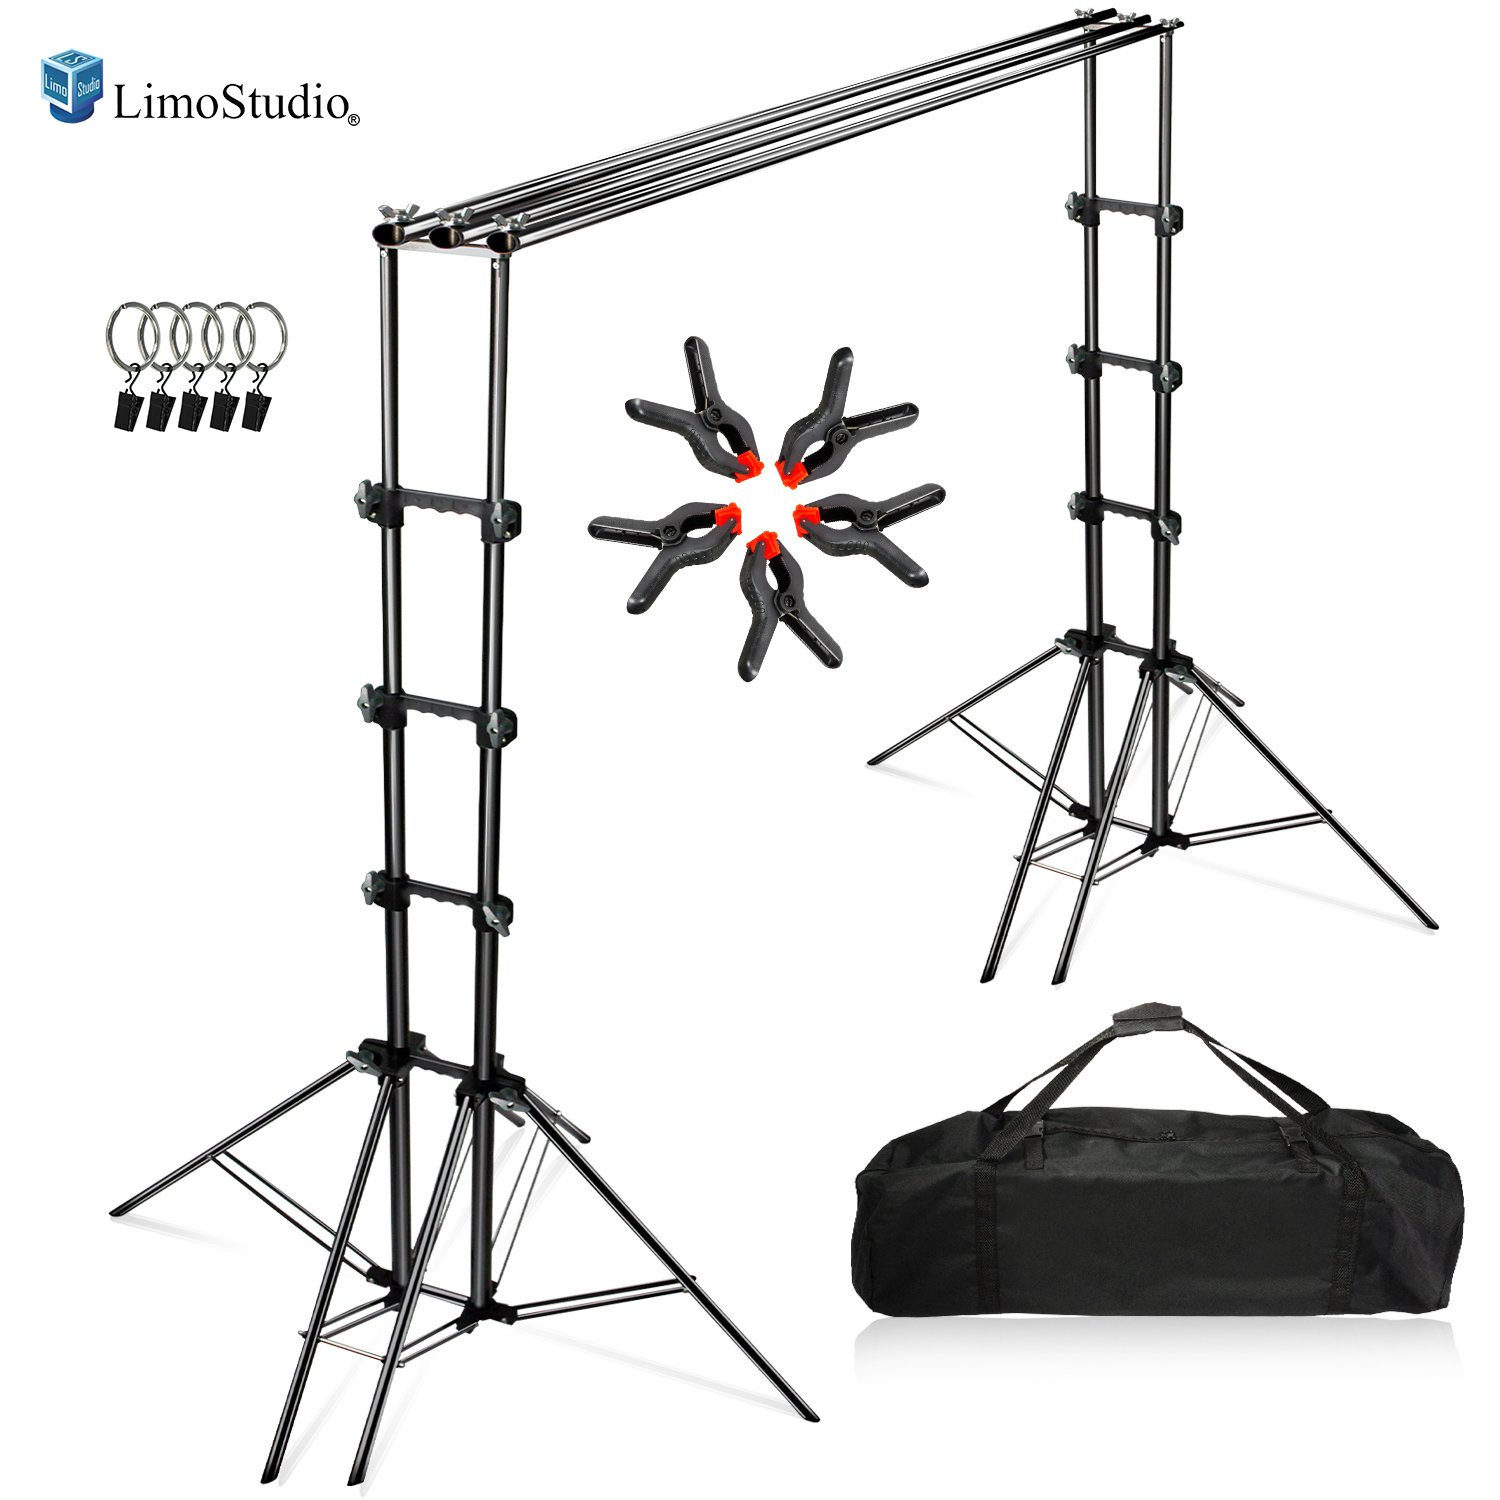 LimoStudio Photography Backdrop Sexapod Support System Stand with 6-Legged Support Stands, Max 10 ft. Cross Bar Sets, Spring Clamps, Backdrop Holders, and Carry Bag for Photo Video Studio, AGG2672